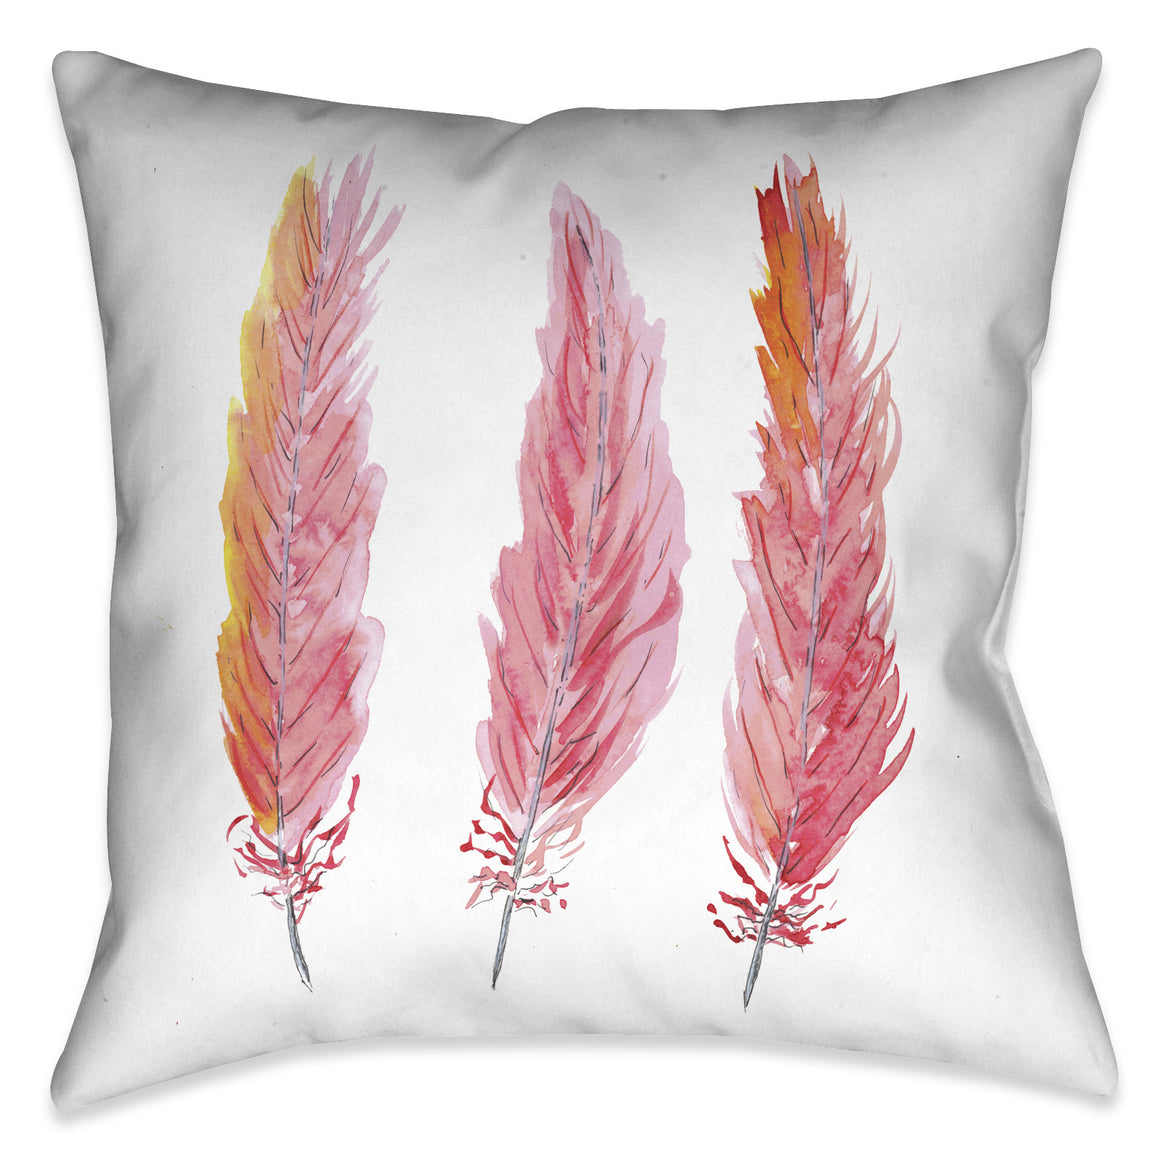 Pink Feathers Pillow